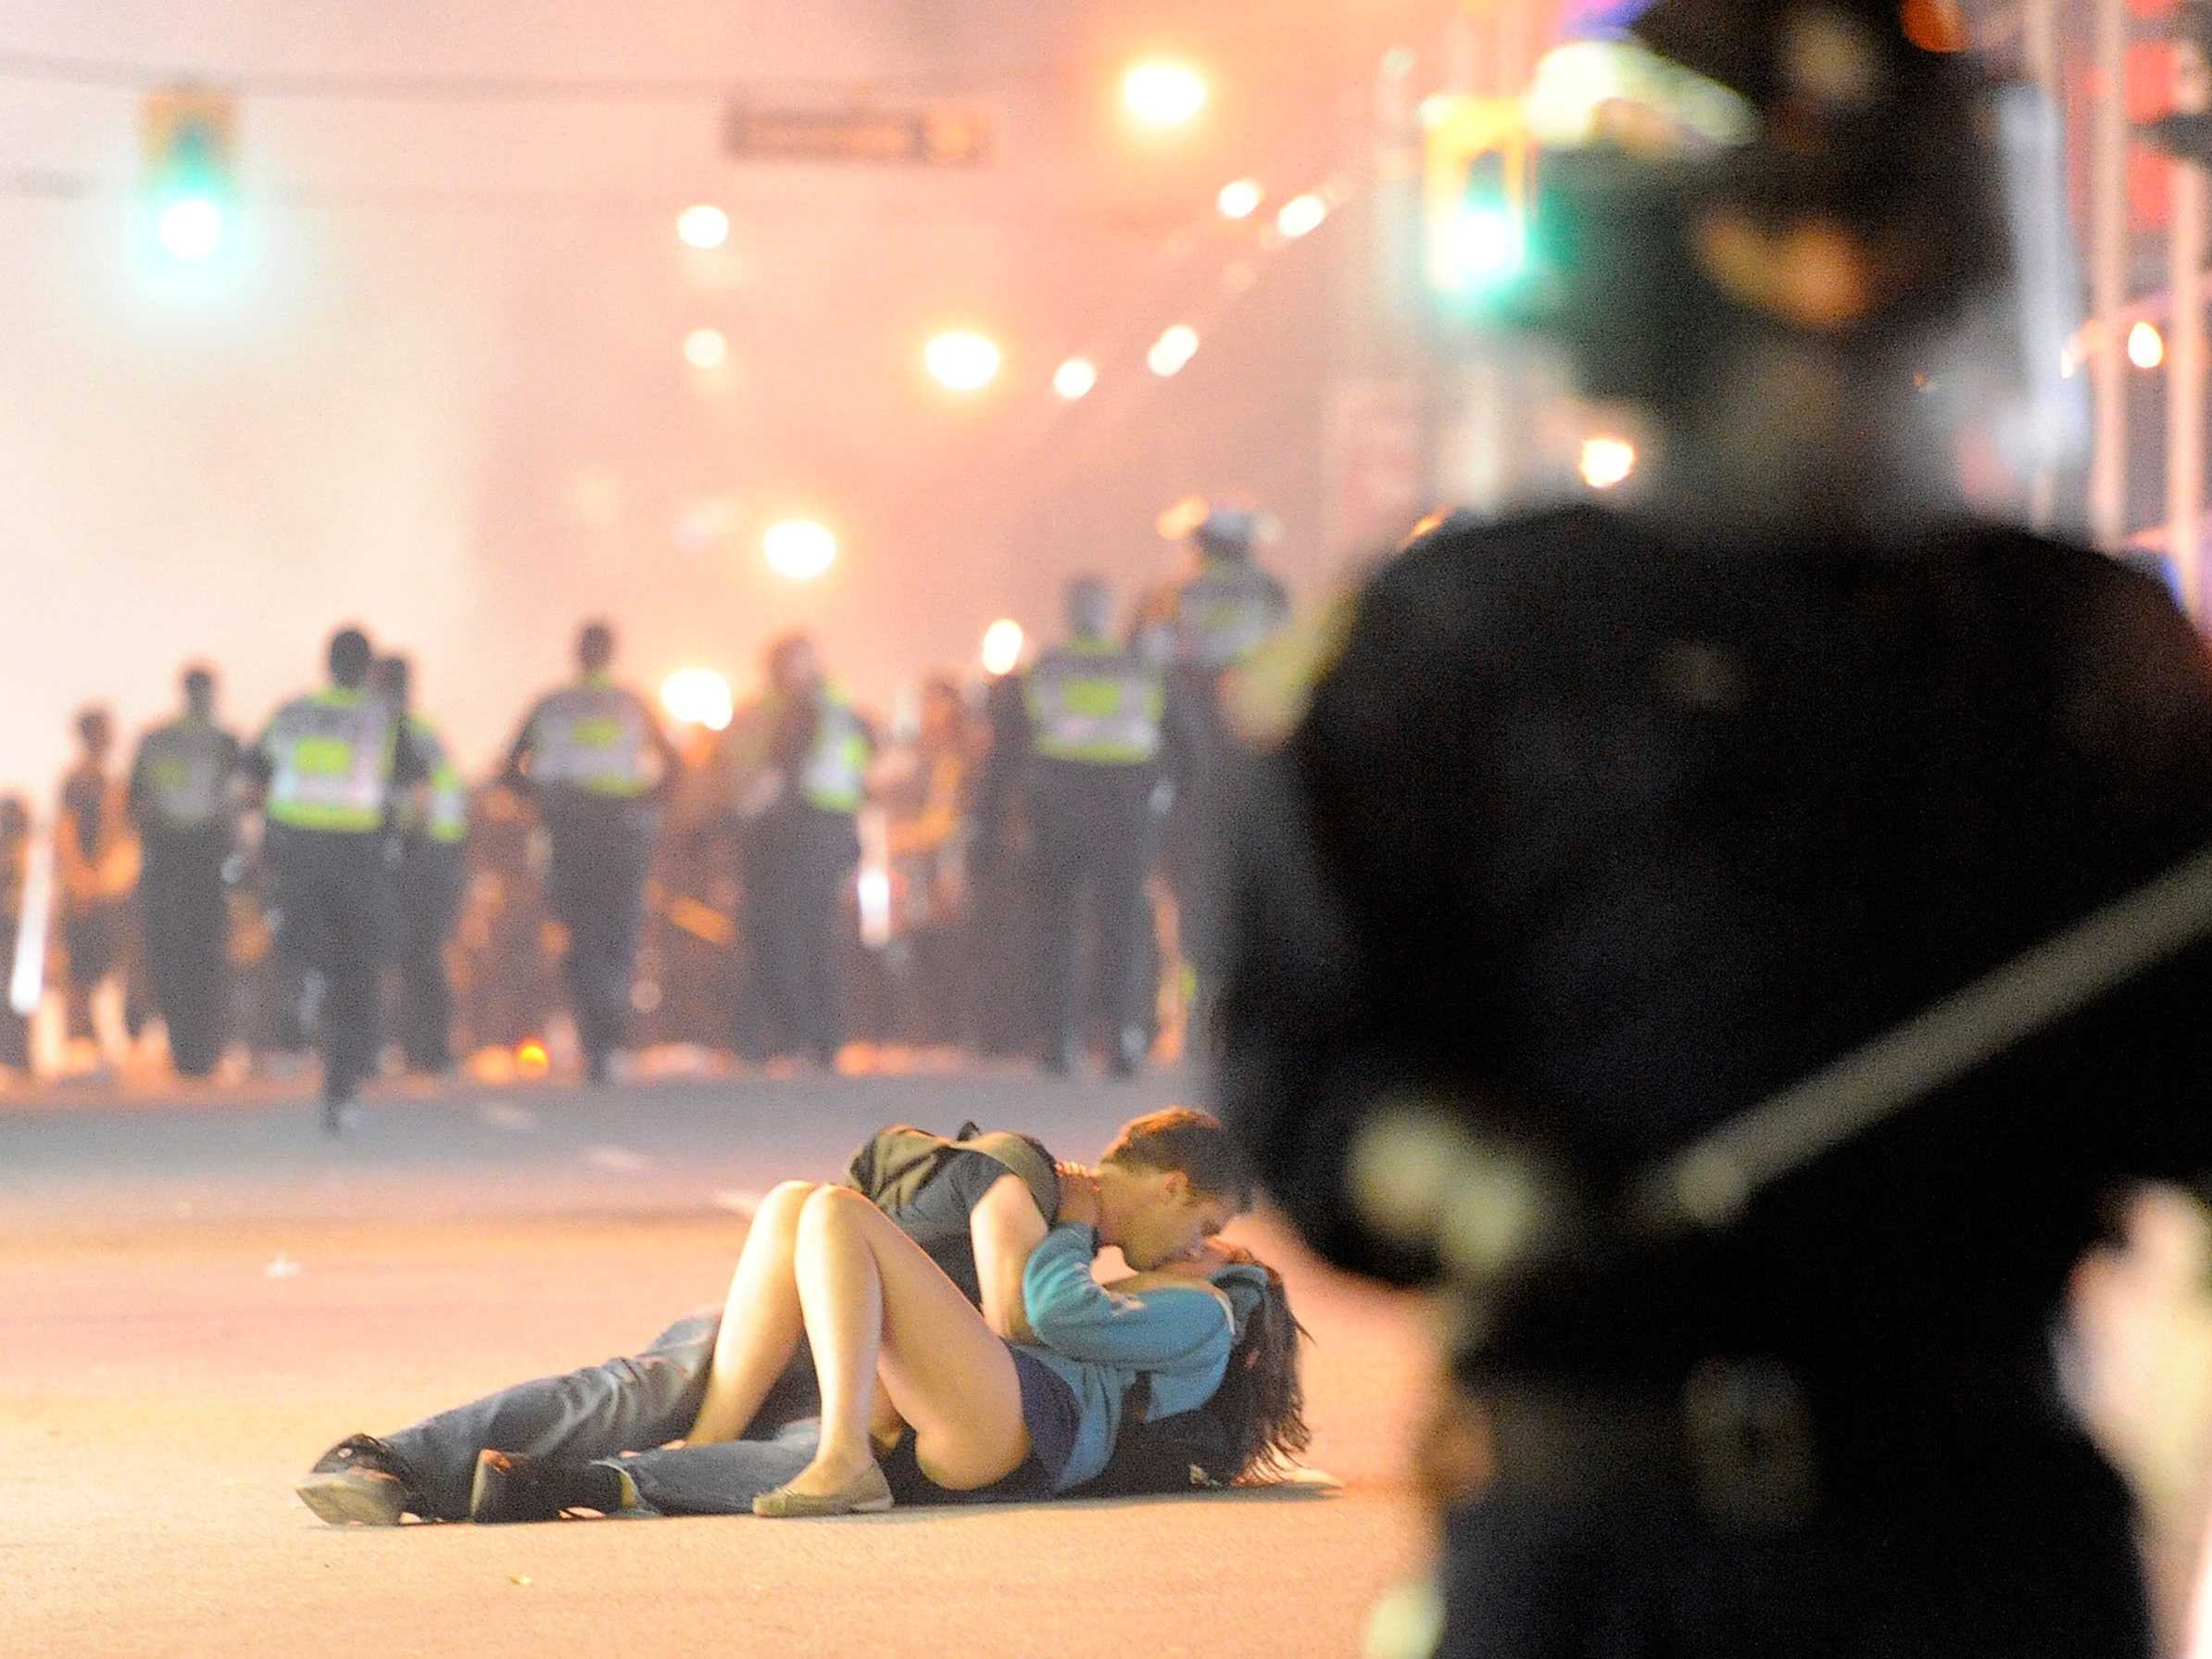 Rich Lam – Couple kissing during riots – Vancouver, Canada (2011) Cultstories cultgallery photograpfy fotografia foto most iconic più famose cult stories cultstories cinema cult story cultstory art culture music ipse dixit aneddoti citazioni frasi famose aforismi immagini foto personaggi cultura musica storie facts fatti celebrità vip cult spettacoli live performance concerto photo photography celebrity giornalismo scrittura libri genio pop icon attore cantante solista pittrice scultore attrice star diva sex symbol Suggestion Expanded sub-suggestions riots in america riots in ferguson riots in india riots in greece riot support riots not diets riot store riots in greece 2015 riots baltimore riots a riots are the language of the unheard riots august 2015 riots against police riots api riots at stonewall riots at kingman prison riots around the world riots and roses riots act riots athens riots b riots baltimore riots by race riots black lives matter riots by rascal flatts riots band riots bay area riots before stonewall riots by year riots beirut riots before the american revolution riots c riots charleston riots charleston sc riots caused by police brutality riots chicago riots cincinnati riots charlotte riots chicago server ip riots cleveland riots columbia sc riots cincinnati 2015 riots d riots definition riots downtown charlotte riots drills and the devil riots during the great depression riots drills and the devil part 2 riots due to police brutality riots dc riots during the civil war riots due to racism riots dubose riots e riots email riots escape kayak riots europe riots expected in cincinnati riots erupted in april of 1968 as a reaction to riots england riots ecuador riots email league of legends riots england 2011 riots ecuador 2015 riots f riots ferguson riots france riots fest riots fountain square riots favorite champion riots for straight outta compton riots france 2005 riots france uber riots ferguson 2015 riots footage riots g riots games riots greece riots germany riot's gone riots greece 2015 riot's gone lyrics riots going on right now riots garage riots gujarat riots golden state riots h riots history riots huntington beach riots hampton beach riots happening now riots happening right now riots hindi meaning riots hungary riots holland riots hindi riots hackney riots i riots in america riots in ferguson riots in india riots in greece riots in greece 2015 riots in america 2015 riots in missouri riots in la riots in detroit riots in paris riots j riots june 2015 riots july 2015 riots jamshedpur riots jerusalem riots jail riots japan riots july 2013 riots jordan riots jakarta riots johannesburg riots k riots kingman prison riots king assassination riots kansas city 1968 riots kuala lumpur riots kos riots kuala lumpur 2015 riots kolkata riots knysna riots korean riots kayak riots l riots los angeles riots last night riots lyrics riots live riots lcs substitute rules riots london riots lebanon riots league of legends riots language of the unheard riots london 2015 riots m riots meaning riots missouri riots movie riots music riots malaysia riots matchmaking system riots mom hits son riots mobs out of control riots melees and disturbances of the peace riots meaning in hindi riots n riots not diets riots news riots net worth riots number riots next game riots new game riots next champion riots new server ip riots new server riots near st louis riots o riots of 1992 riots on the streets of miami riots of 1967 riots over confederate flag riots of 1968 riots over gay marriage riots of the 1960s riots of 2015 riots over uber riots of tulsa oklahoma riots p riots phone number riots police riots police brutality riots paris riots prison architect riots points riots pronunciation riots paris 2015 riots police shooting riots prison riots q riots quote riots quebec riots queen street glasgow riots qatar riots qv riots questionnaire riots quotations riots quashed quiet riots quinnipiac riots riots r riots response to sandbox mode riots revolutions and the scottish covenanters riots reddit riots rascal flatts riots right now riots rochester ny riots reframed riots resort riots reframed watch online riots rotherham 2015 riots s riots synonym riots st louis riots stream riots south carolina riots sandbox mode riots stream geometry dash riot's servers riots sweep chicago riots server ip riots sweden riots t riots today riots this year riots thesaurus riots tumblr riots that worked riots turkey riots that changed things riots tonight riots twitter riots twitch riots u riots usa riots ukraine riots uber riots uptown charlotte riots uc riots university of cincinnati riots under bush administration riots uk riots usa 2015 riots uk 2015 riots v riots video riots vs protests riots voice unheard riots videos youtube riots venezuela riots vancouver riots victoria riots victorian prison riots vadodara riots vancouver 2015 riots w riots watts riots work riots wikipedia riots work salon riots worldwide riots washington dc riots white vs black riots warriors win riots work run the jewels riots warriors riots x lolita riots riots xinjiang riots xian xinjiang riots 2013 xd riots xinjiang riots 2012 xinjiang riots 2008 xd riots 20x12 xenophobic riots south africa xinjiang riots video xd riots 20x10 riots y riots youtube riots yesterday riots yeovil 1831 riots yesterday london riots youtube channel riots yangon riots yet riots yahoo answers riots yemen riots preteen riots youtube video riots z riots zimmerman verdict riots zanzibar riots zimmerman trial riots zimmerman los angeles riots zimmerman case riots zimmerman oakland riots zimmerman not guilty riots zimmerman miami riots zambia riots zimmerman crenshaw